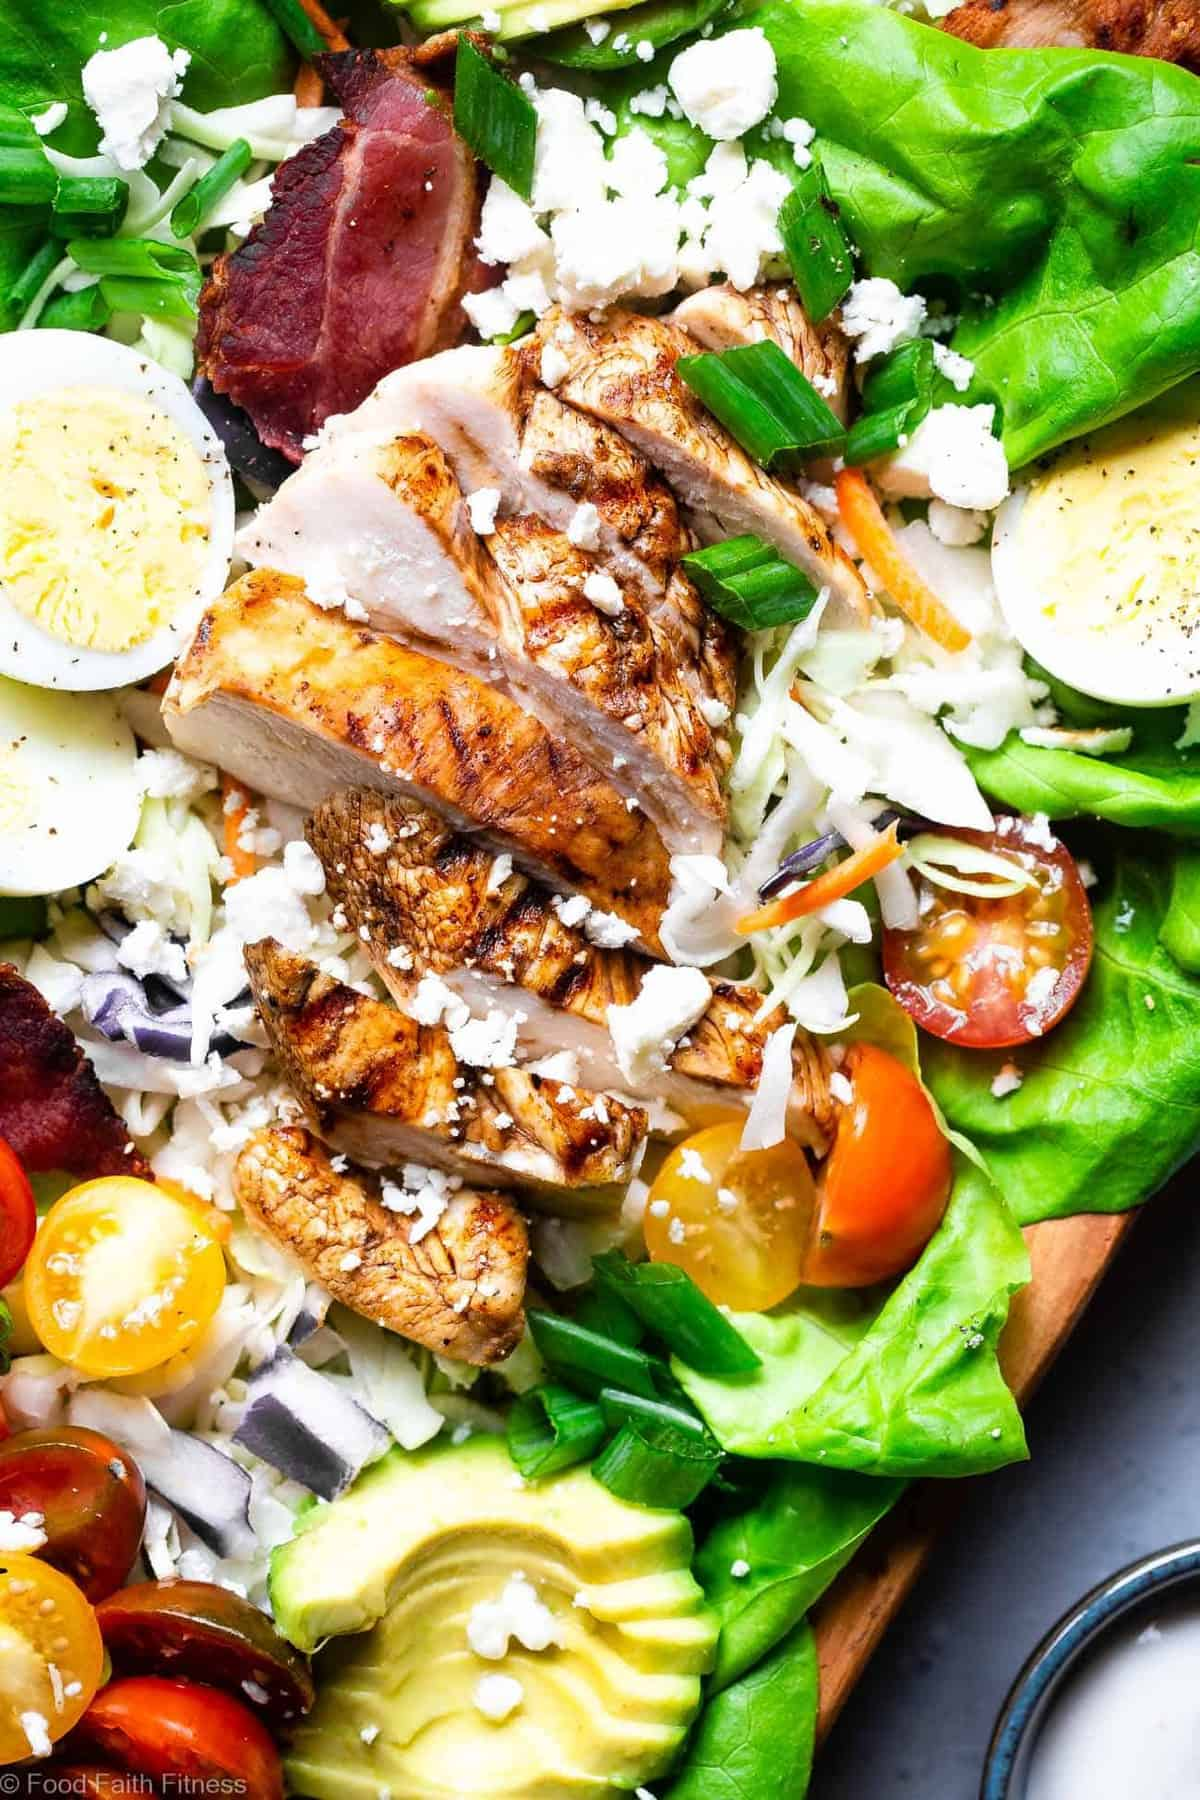 Healthy Chicken Cobb Salad Recipe - This quick, easy skinny Chicken Cobb Salad Recipe is a lighter remake that cuts over half the calories of the classic but not the taste! No one will know it's lighter, gluten free and lower carb! | #Foodfaithfitness | #Glutenfree #lowcarb #healthy #salad #grainfree